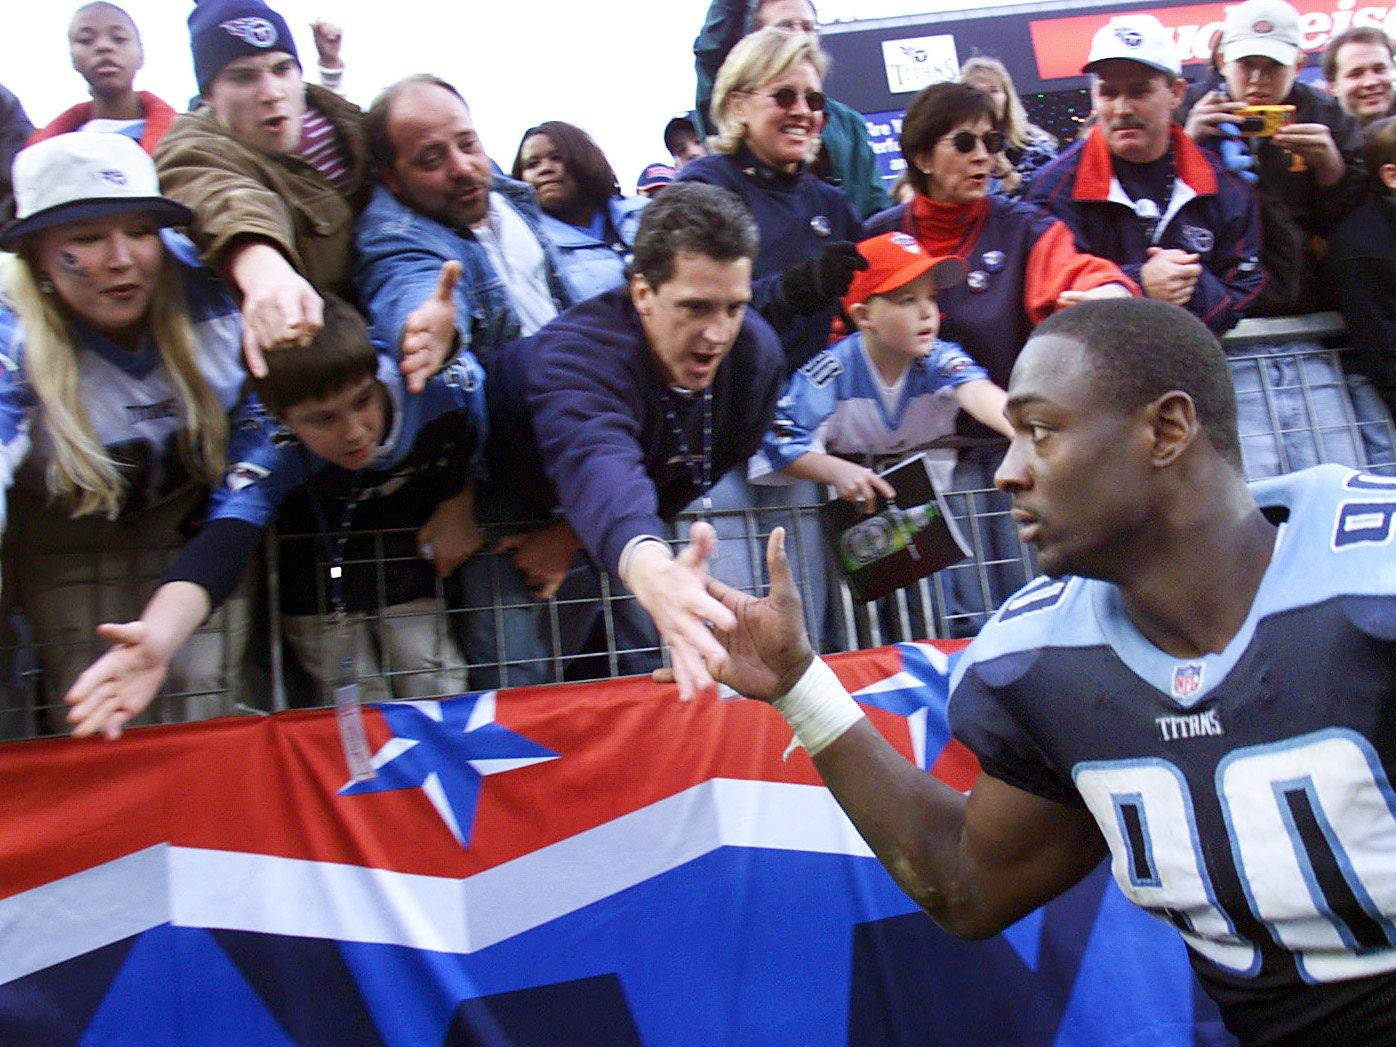 Tennessee Titans star rookie Jevon Kearse shakes hands with the fans after defeating the Atlanta Falcons 30-17 at Adelphia Coliseum Dec. 19, 1999 and insure a playoff berth.